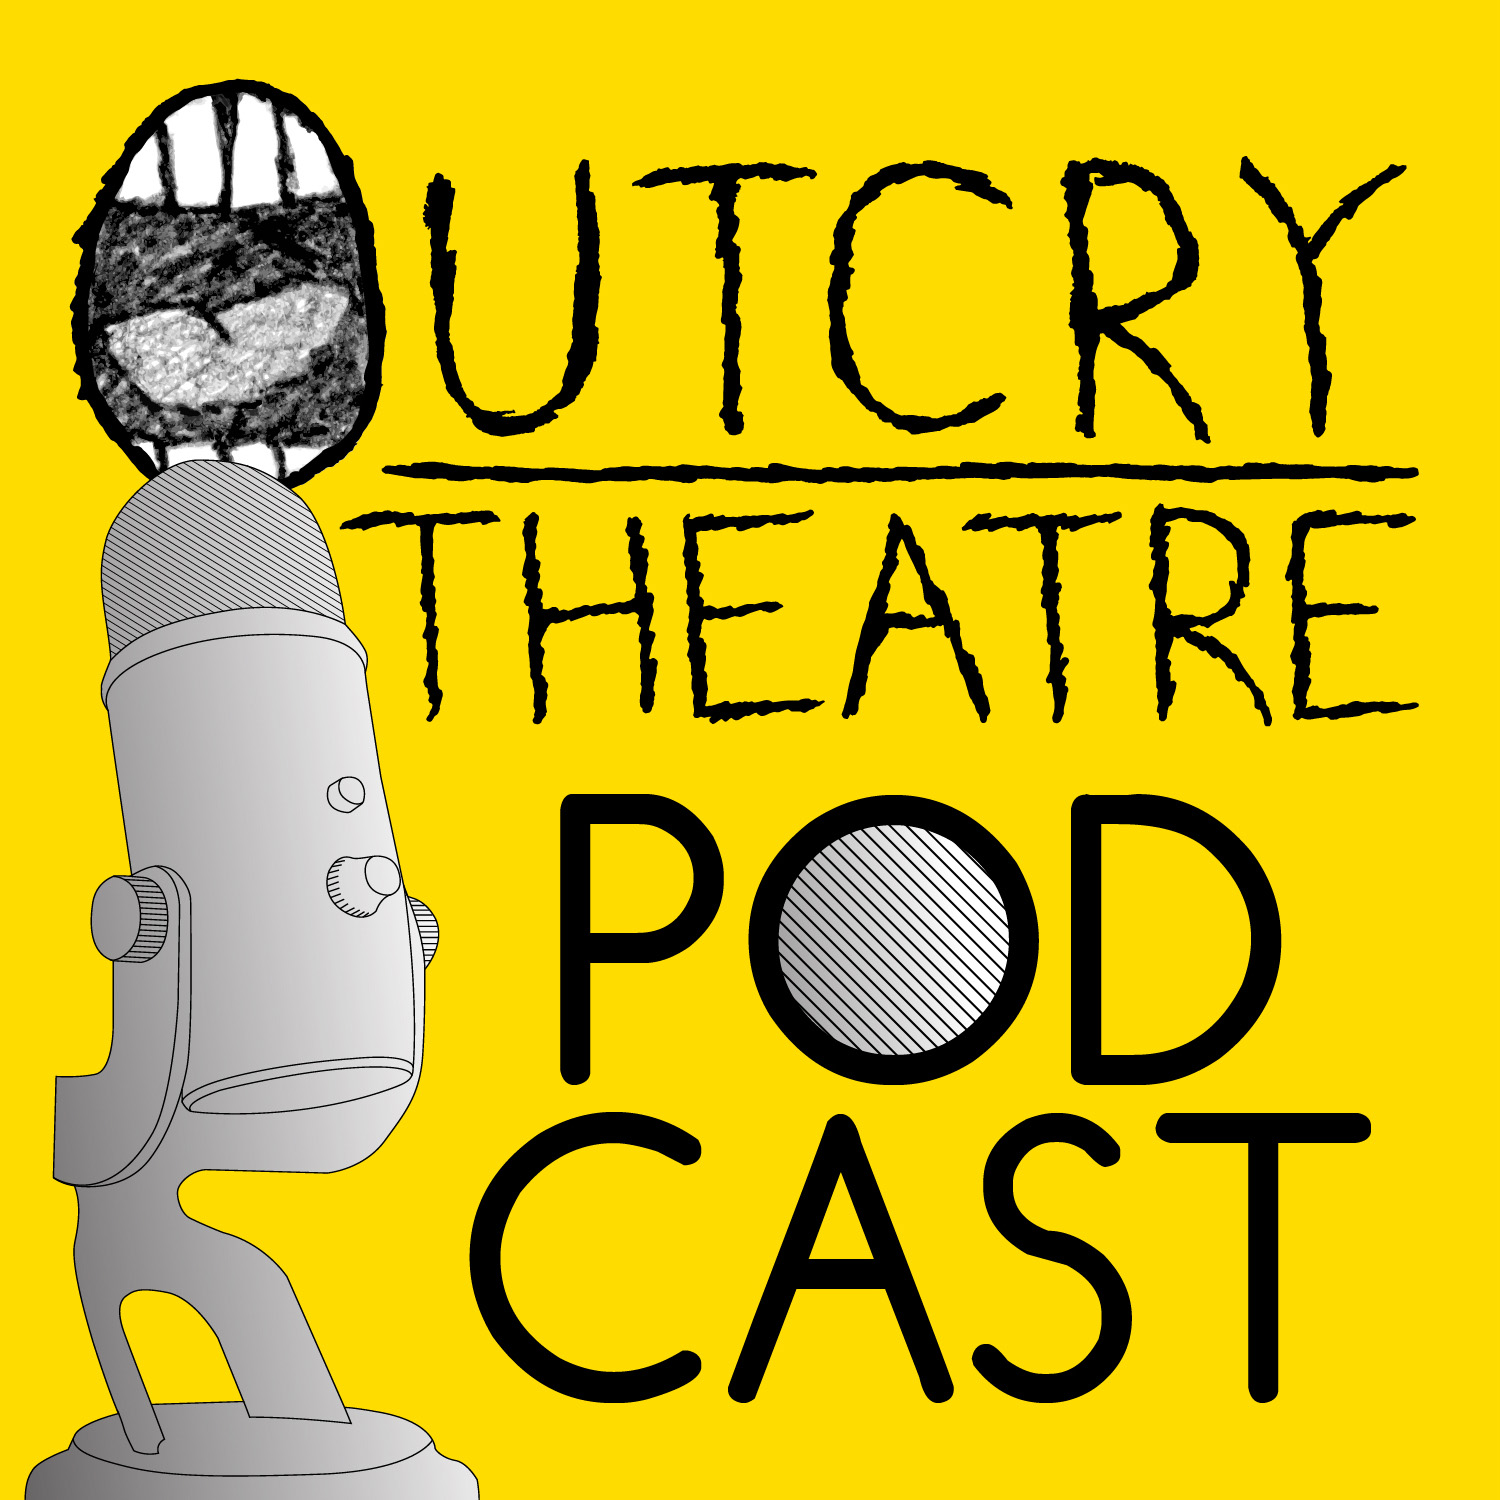 Episode 7 - The Curious Incident of the Dog in the Night-Time